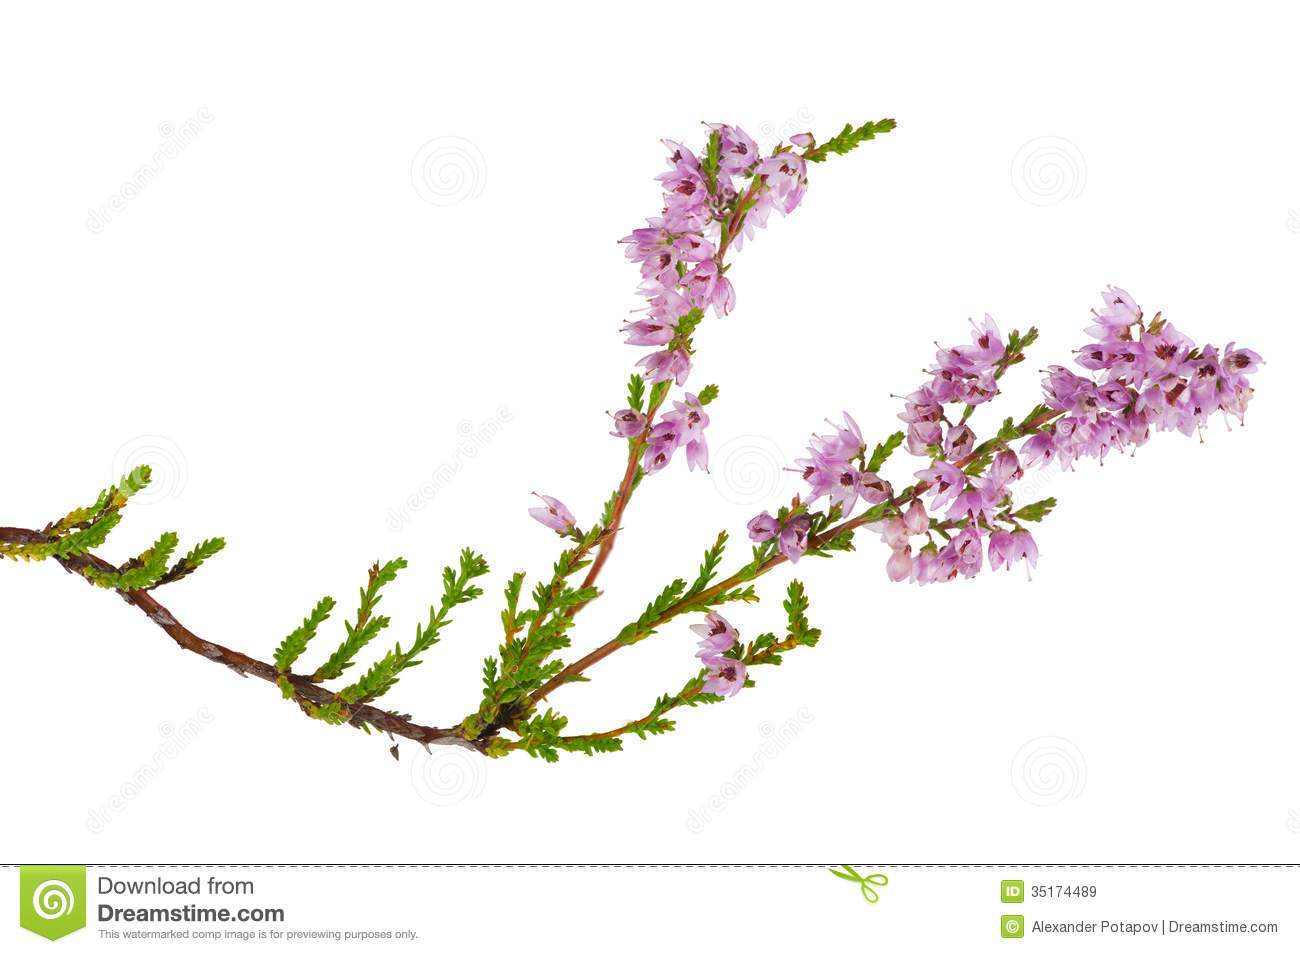 Clipart heather png library Heather clipart 3 » Clipart Portal png library